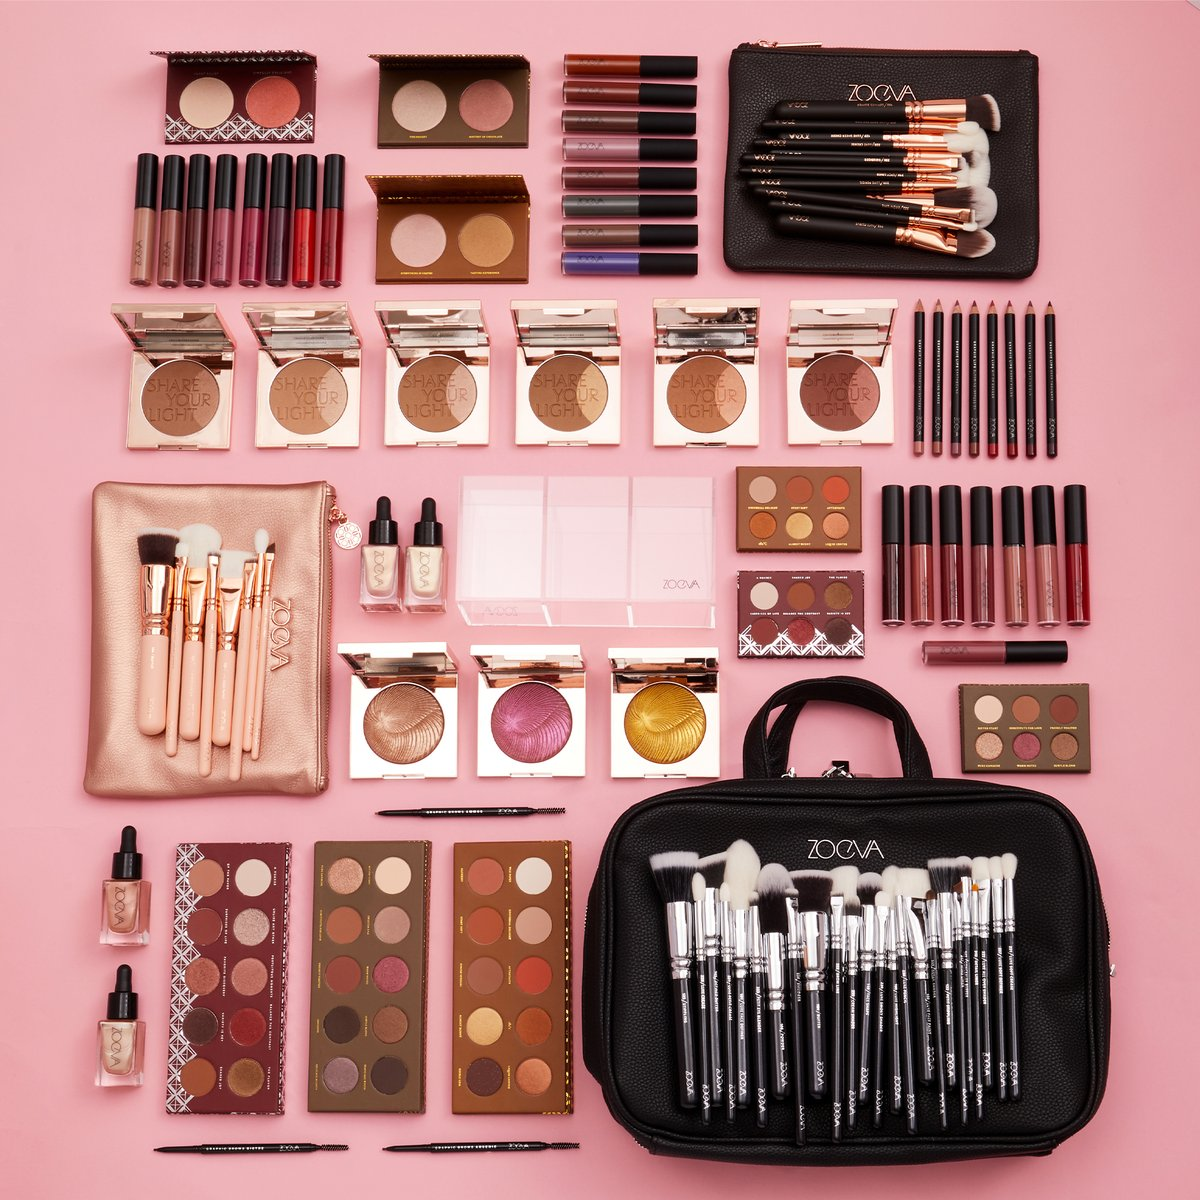 WANNA WIN ALL THIS?! ⚡ £1k worth of @ZoevaCosmetics including their boujeeeee Makeup Artist Zoe Bag 🤑 To be in with a chance of winning: – Like + RT this post 💘 - Reply with a ✨   (T+Cs apply: https://t.co/dDNlTo5lru) https://t.co/KWvhNNPZbz